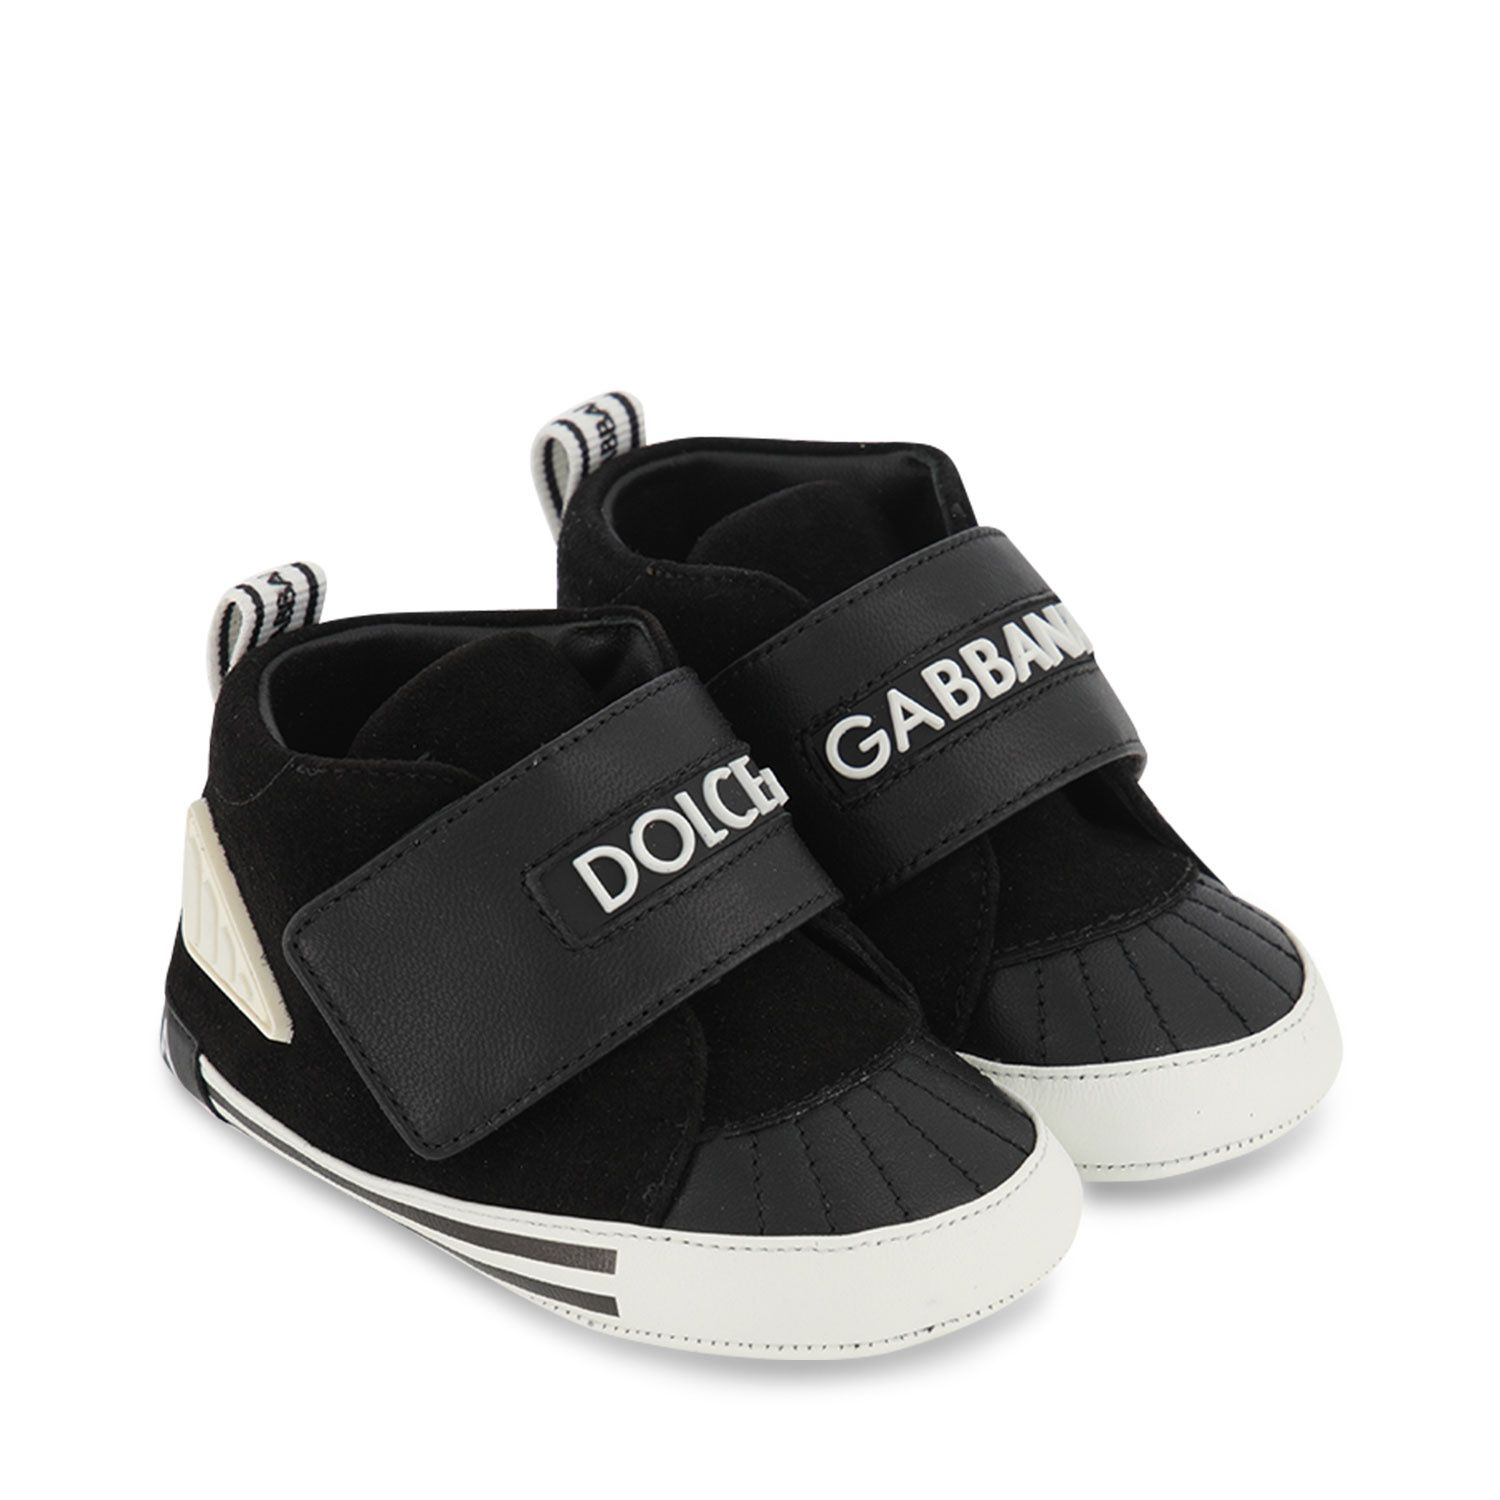 Picture of Dolce & Gabbana DK0128 baby shoes black